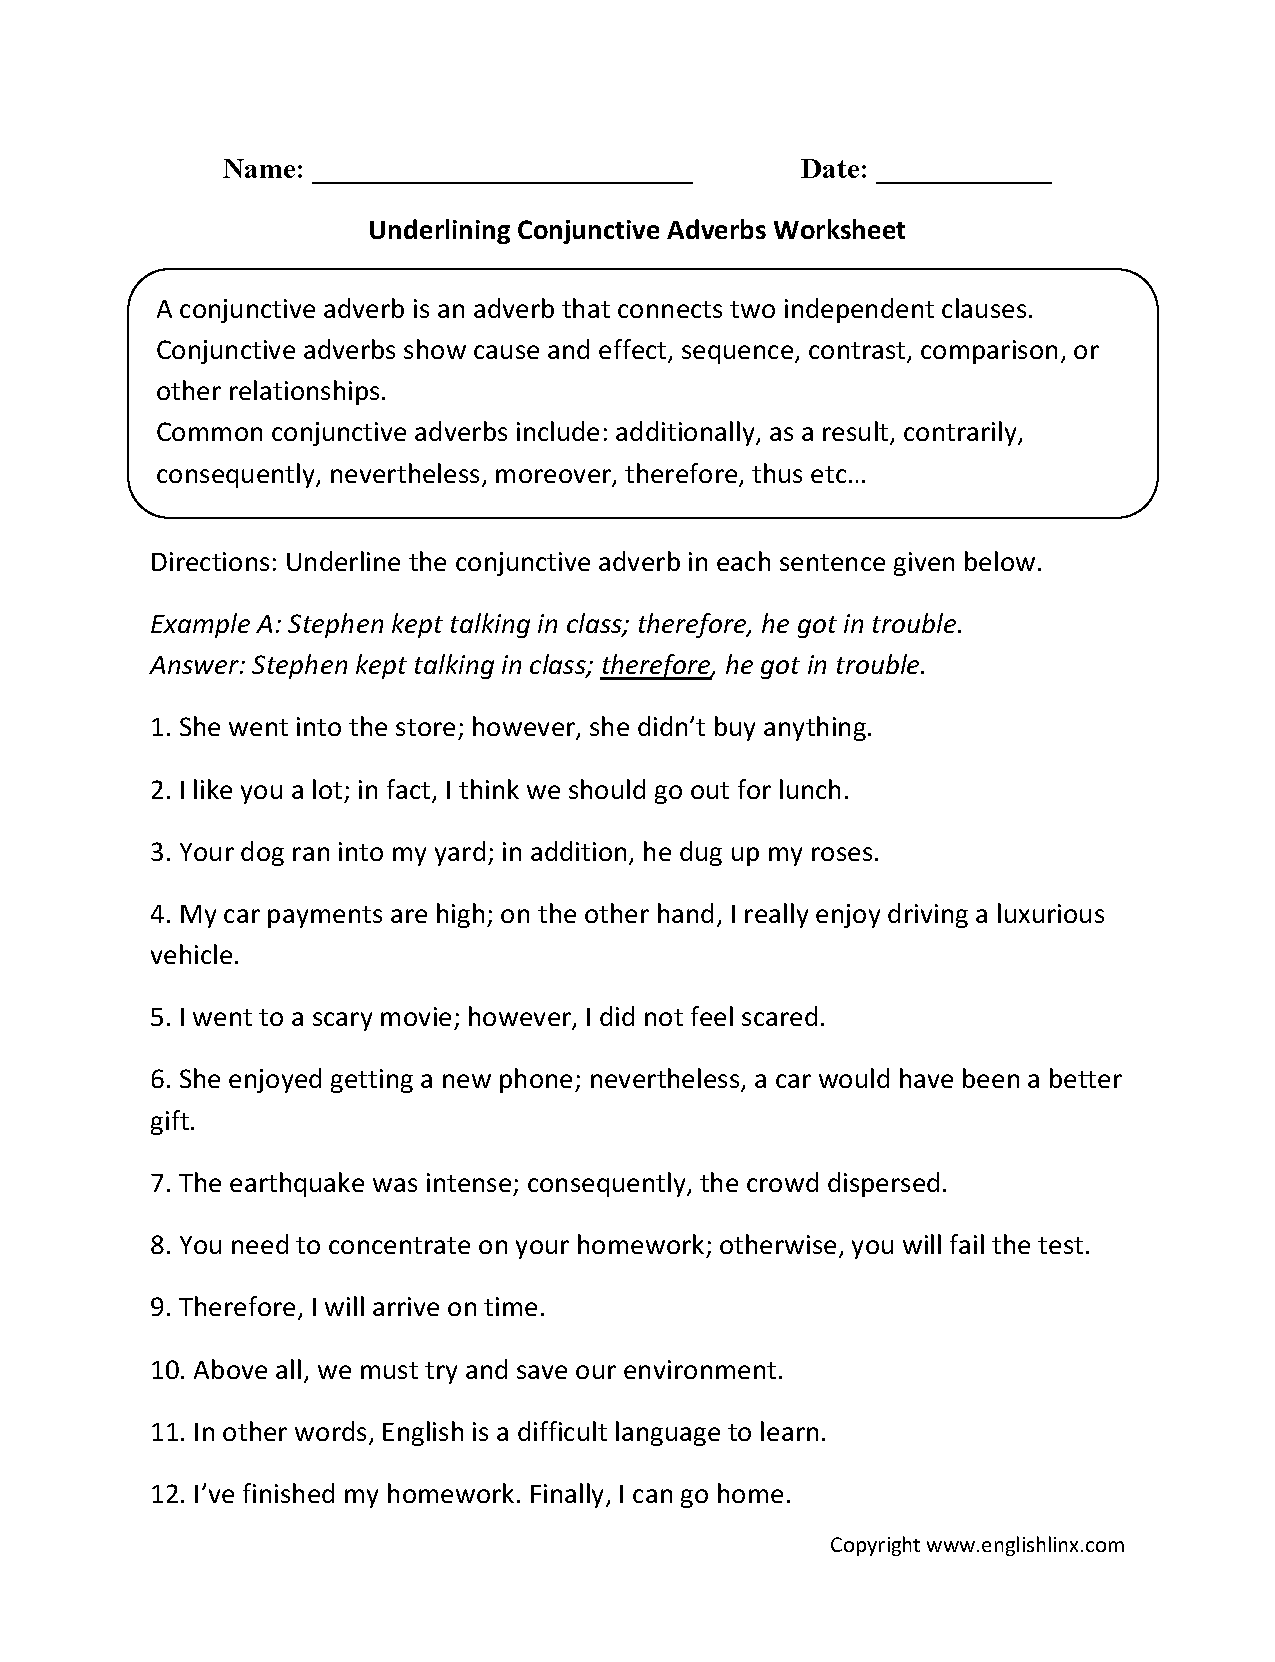 Weirdmailus  Fascinating Englishlinxcom  Conjunctions Worksheets With Engaging Worksheet With Beauteous Free Second Grade Worksheets Also Trends In The Periodic Table Worksheet In Addition Transformations Of Quadratic Functions Worksheet And Characteristics Of Bacteria Worksheet As Well As Amazing Handwriting Worksheets Additionally Multiplying Scientific Notation Worksheet From Englishlinxcom With Weirdmailus  Engaging Englishlinxcom  Conjunctions Worksheets With Beauteous Worksheet And Fascinating Free Second Grade Worksheets Also Trends In The Periodic Table Worksheet In Addition Transformations Of Quadratic Functions Worksheet From Englishlinxcom